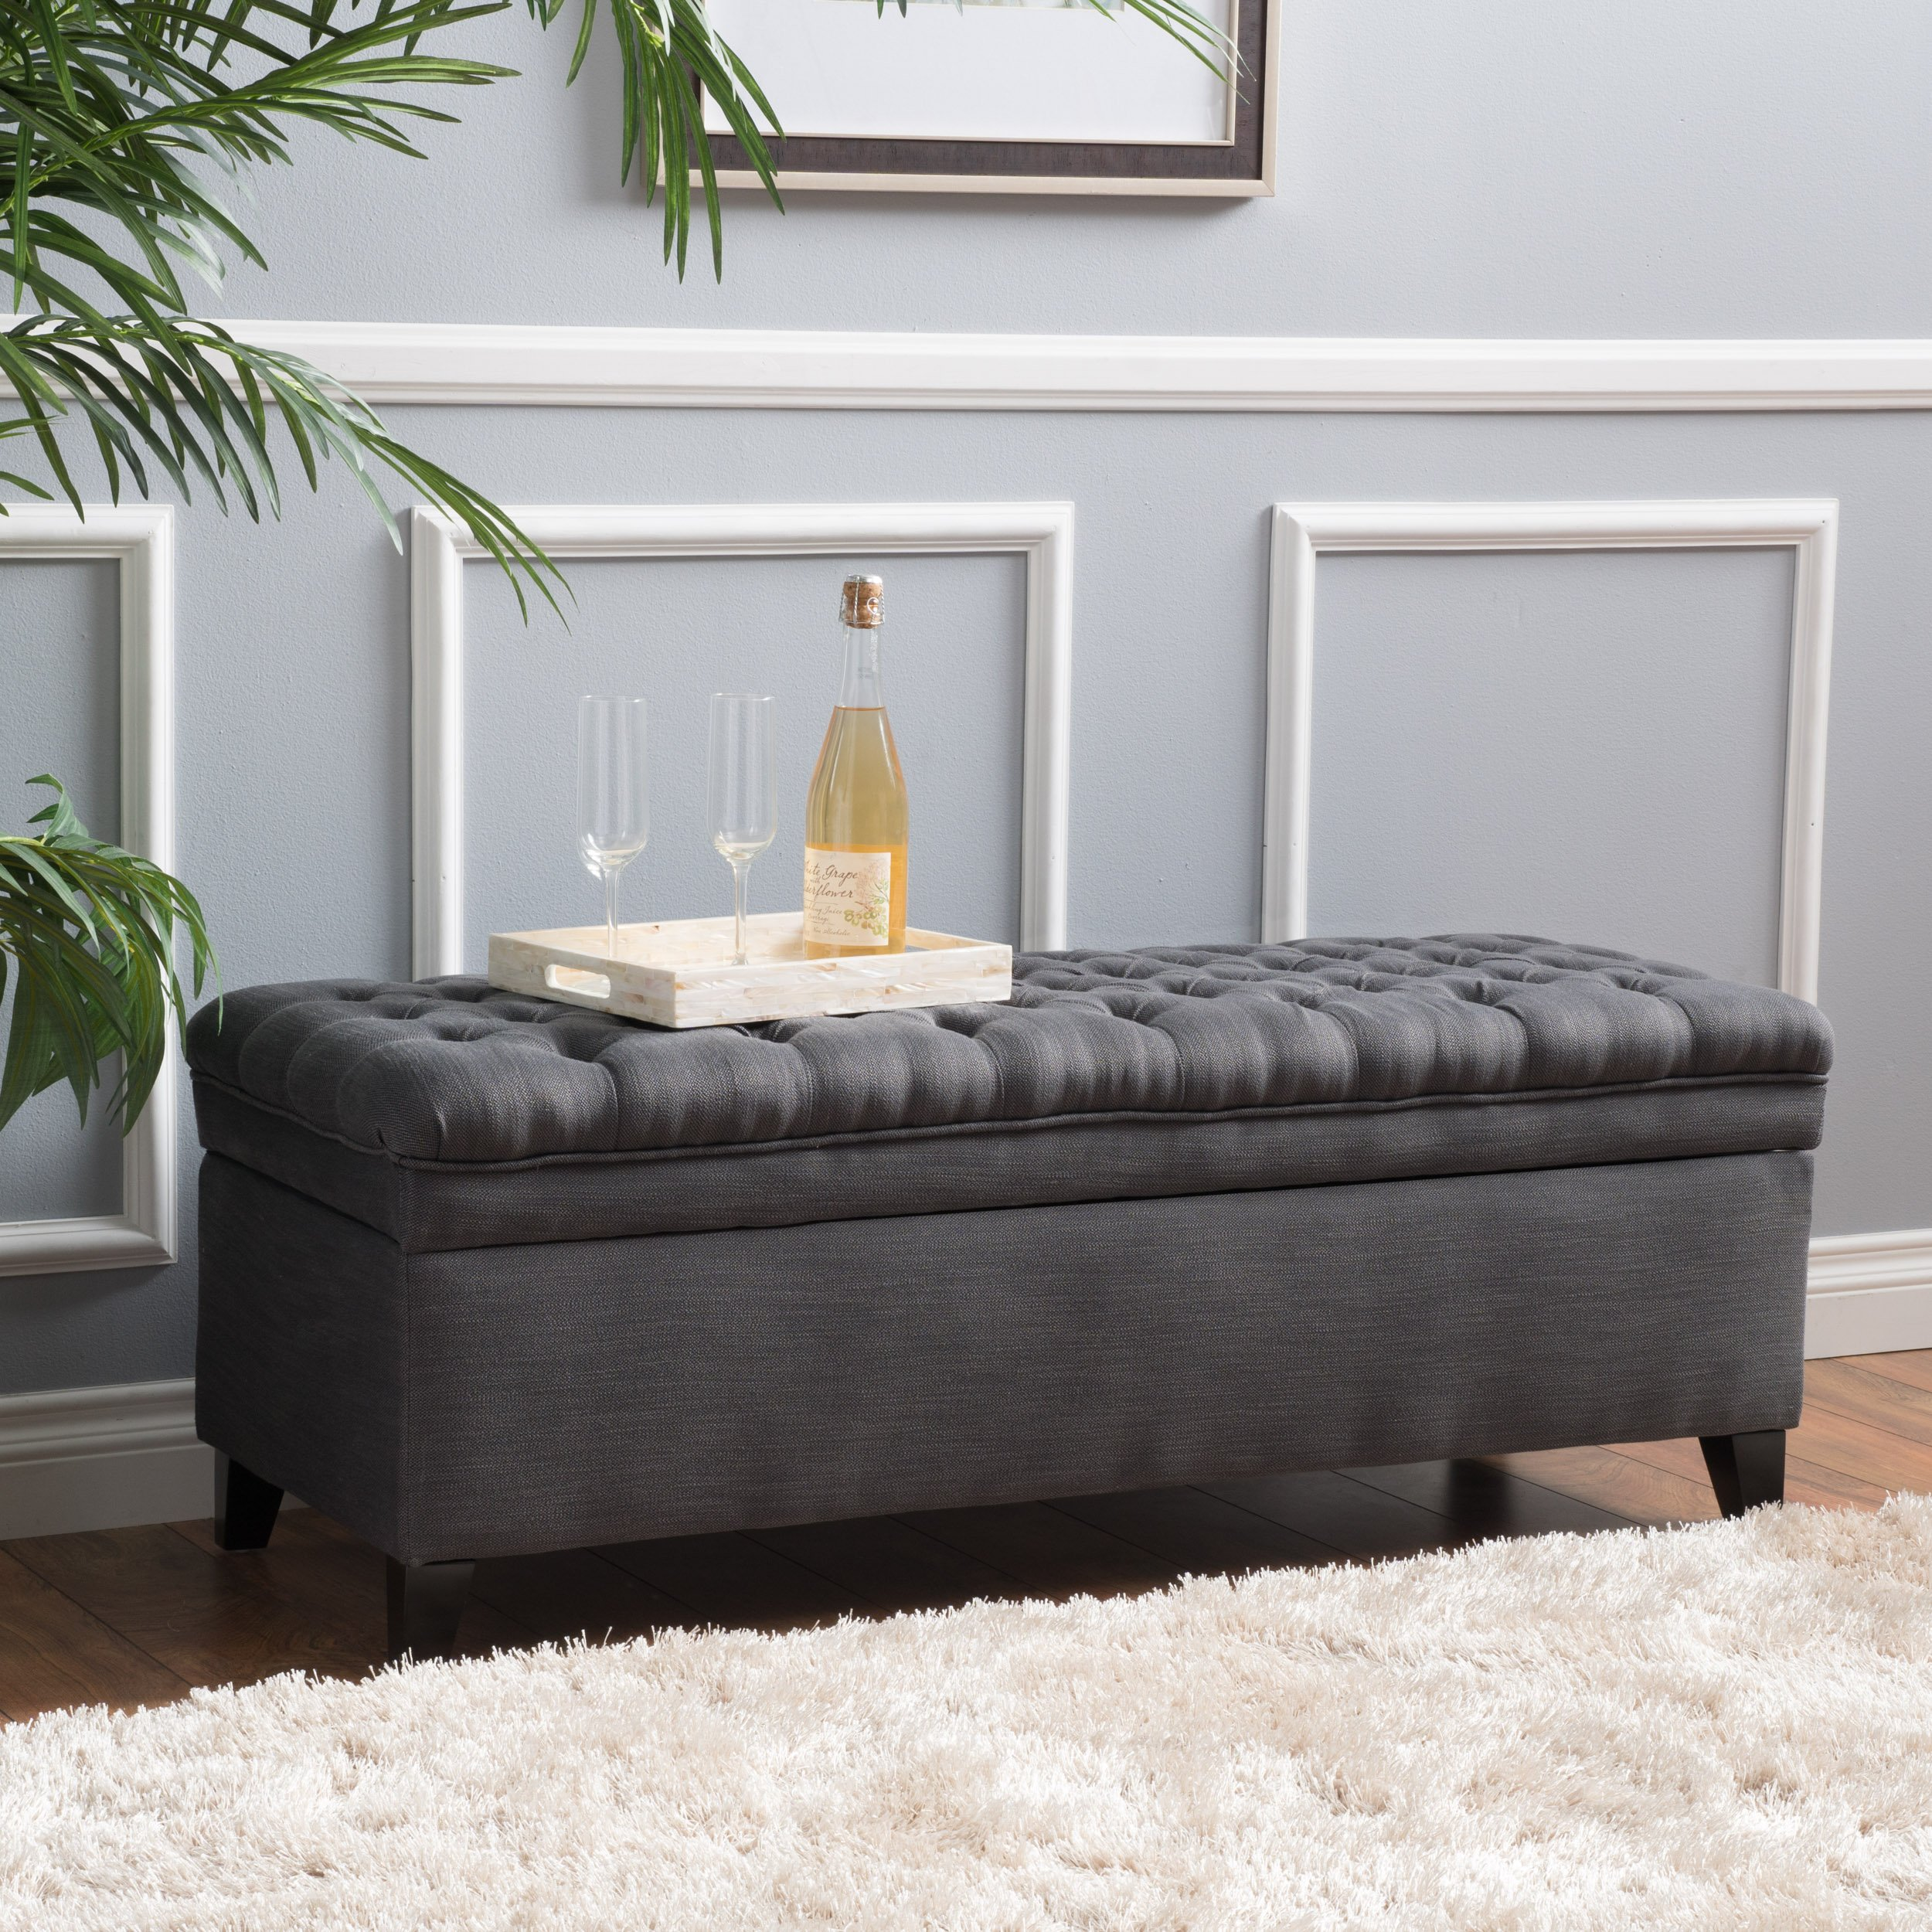 Christopher Knight Home 296933 Living Sheffield Tufted Fabric Gray Storage Ottoman, by Christopher Knight Home